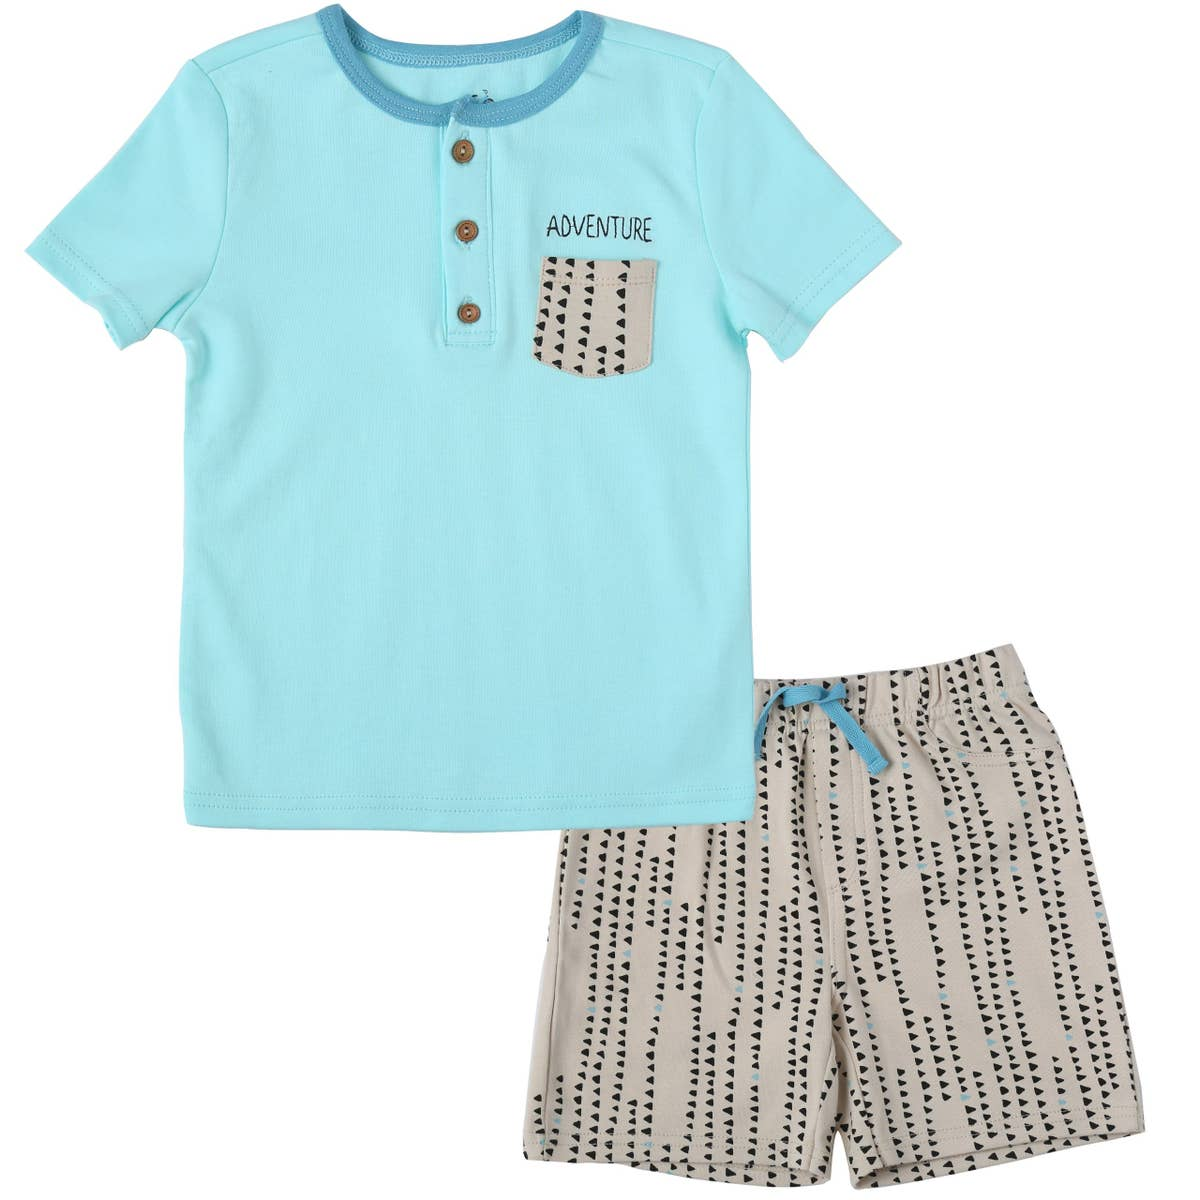 Boy's Tee and Short Adventure Set